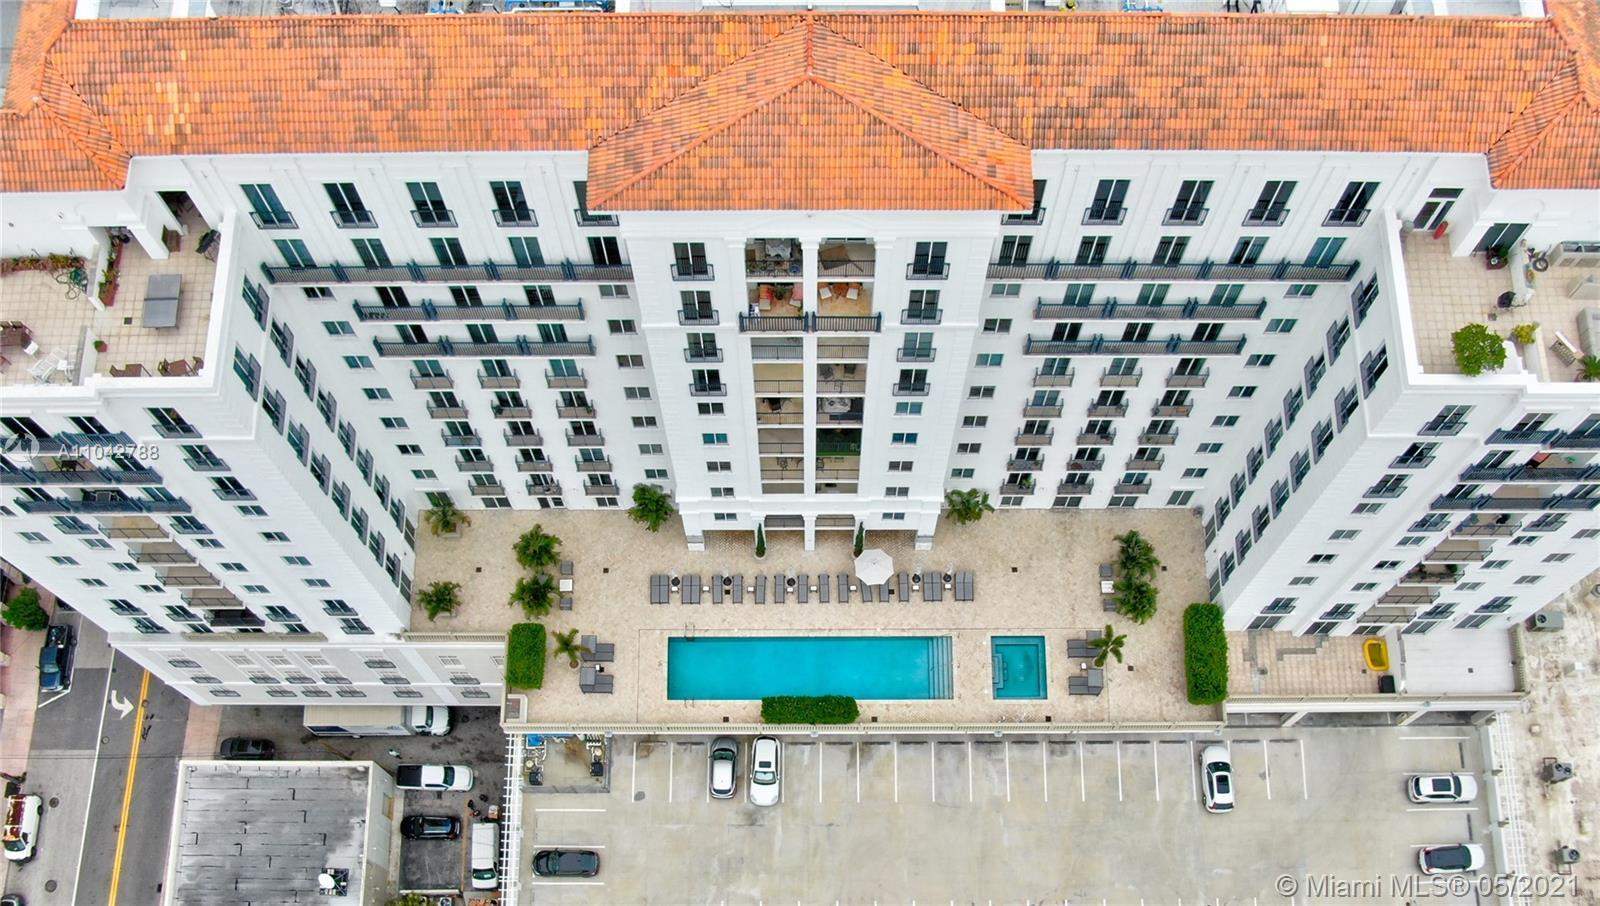 TEN ARAGON Penthouse unit (high ceilings) with beautiful views of Coral Gables skyline. Less than a